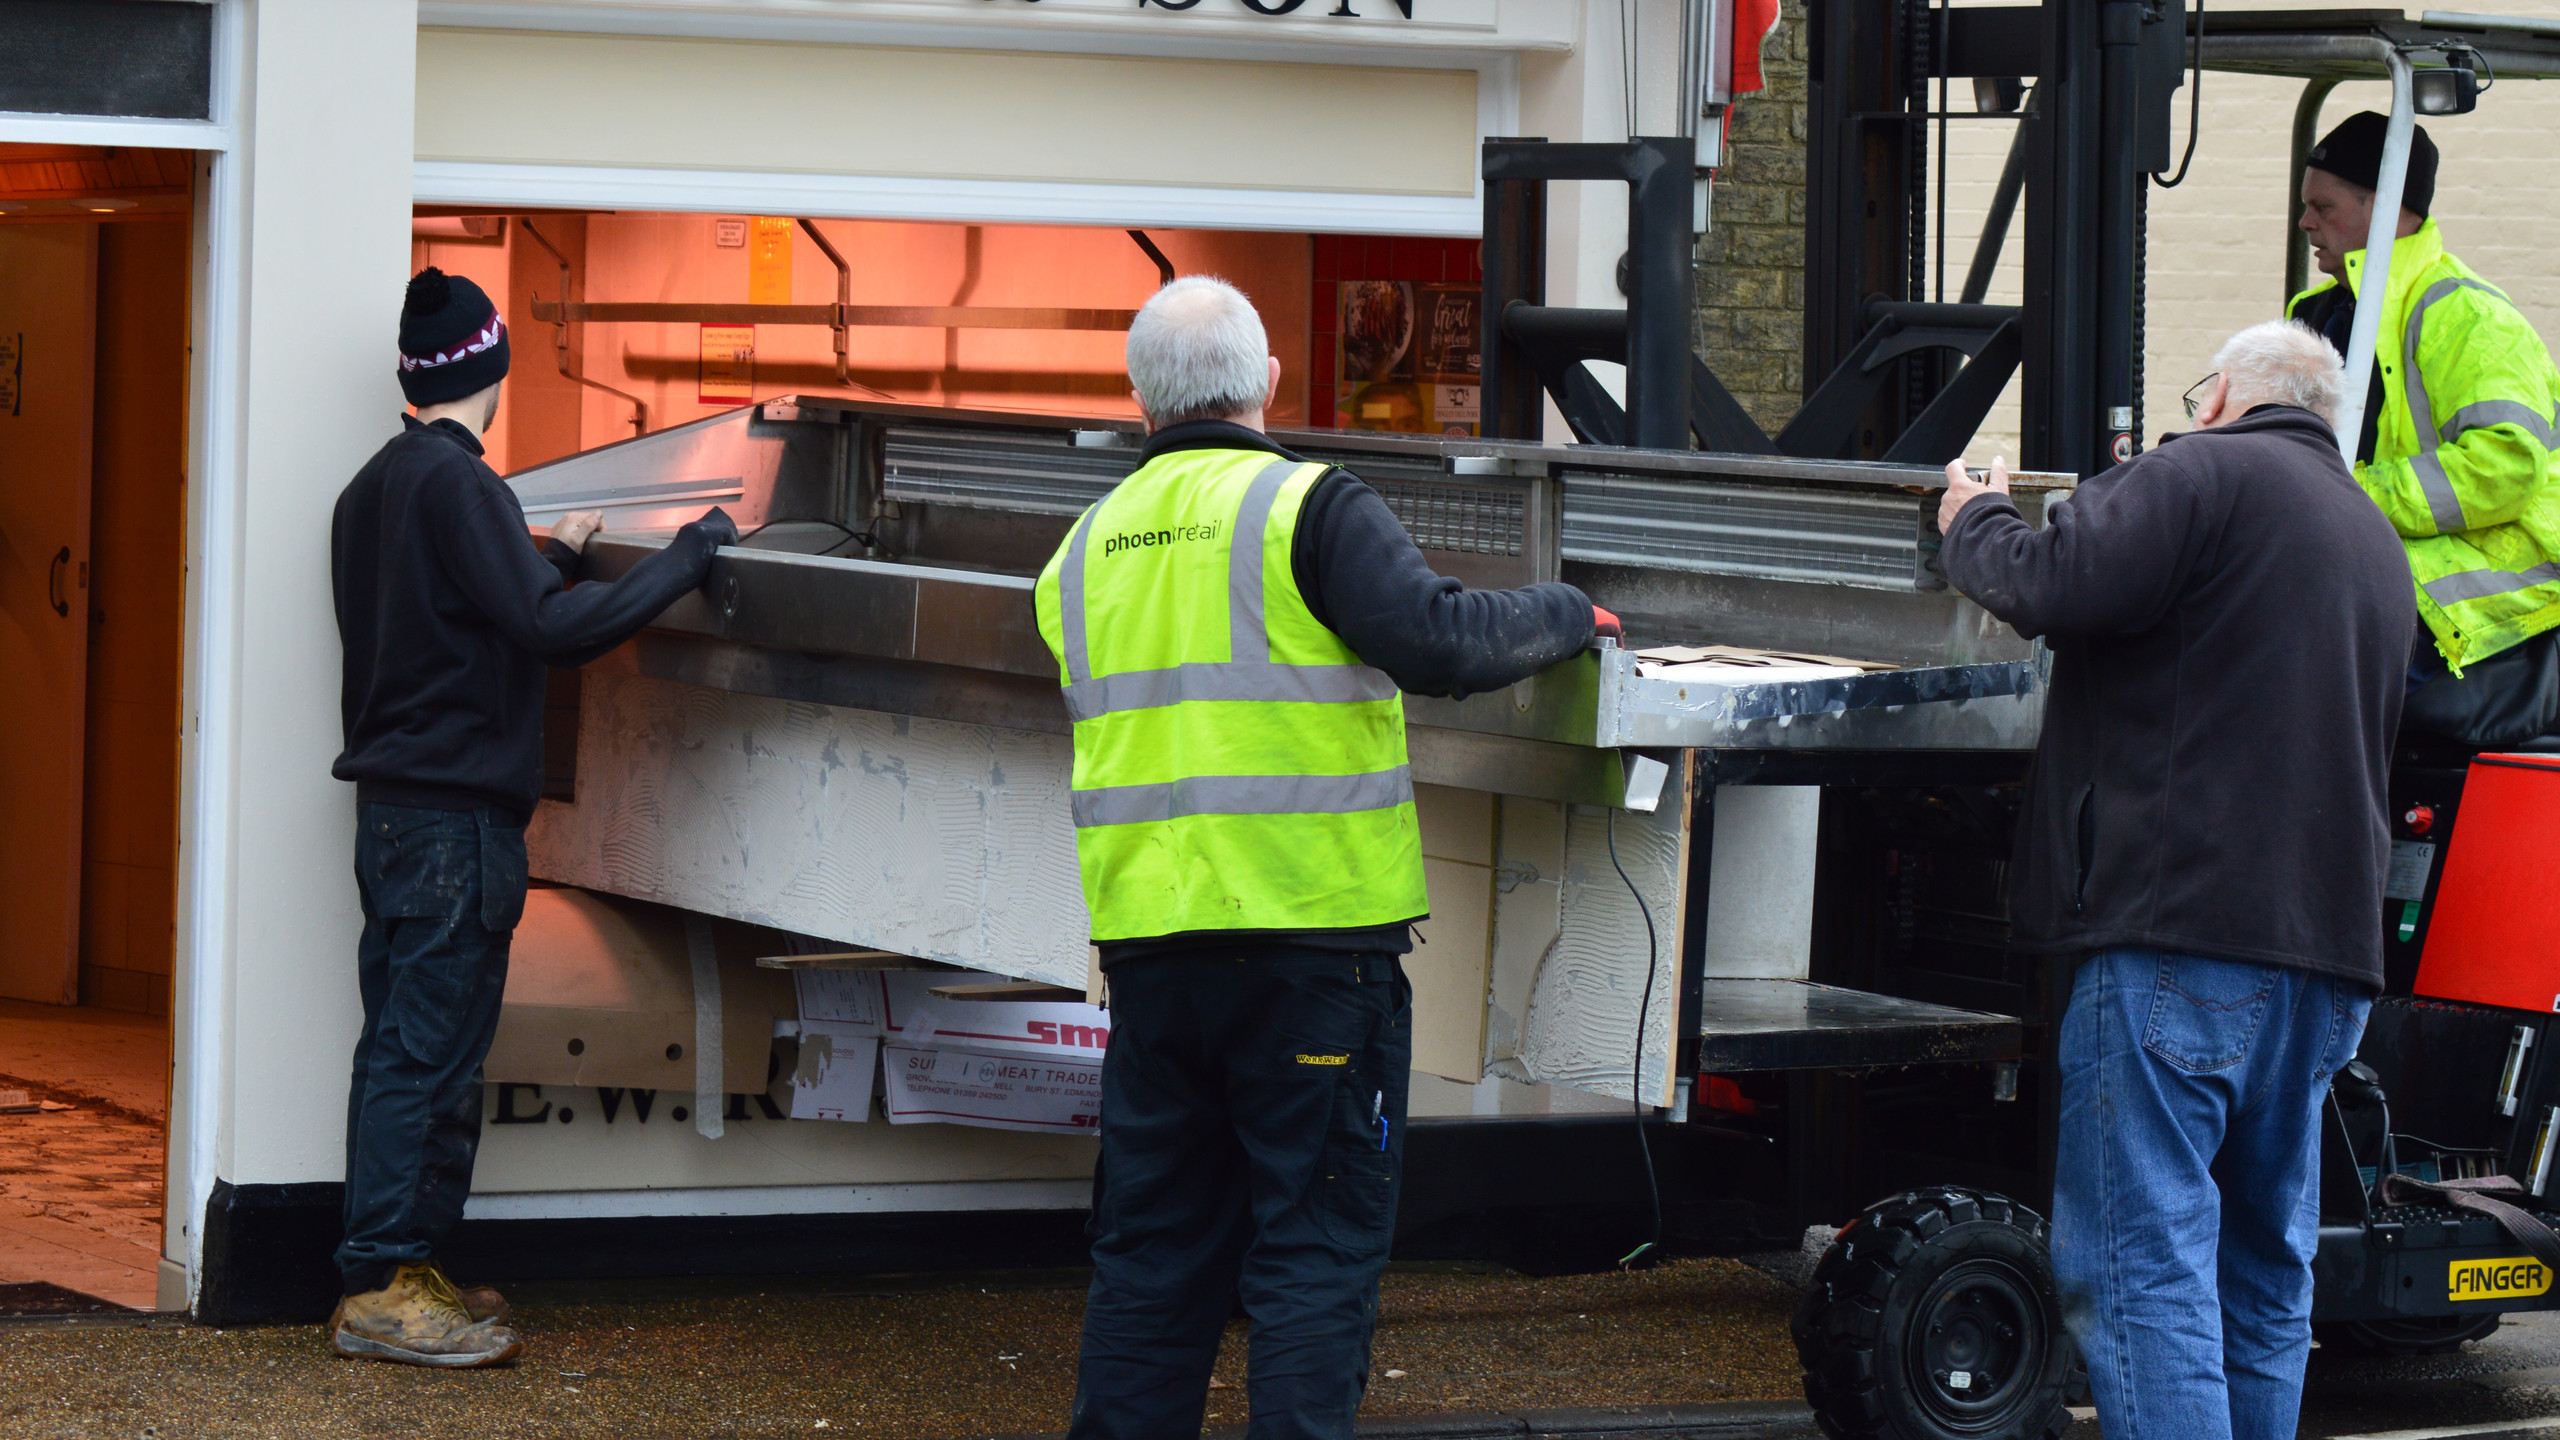 in comes the fork lift